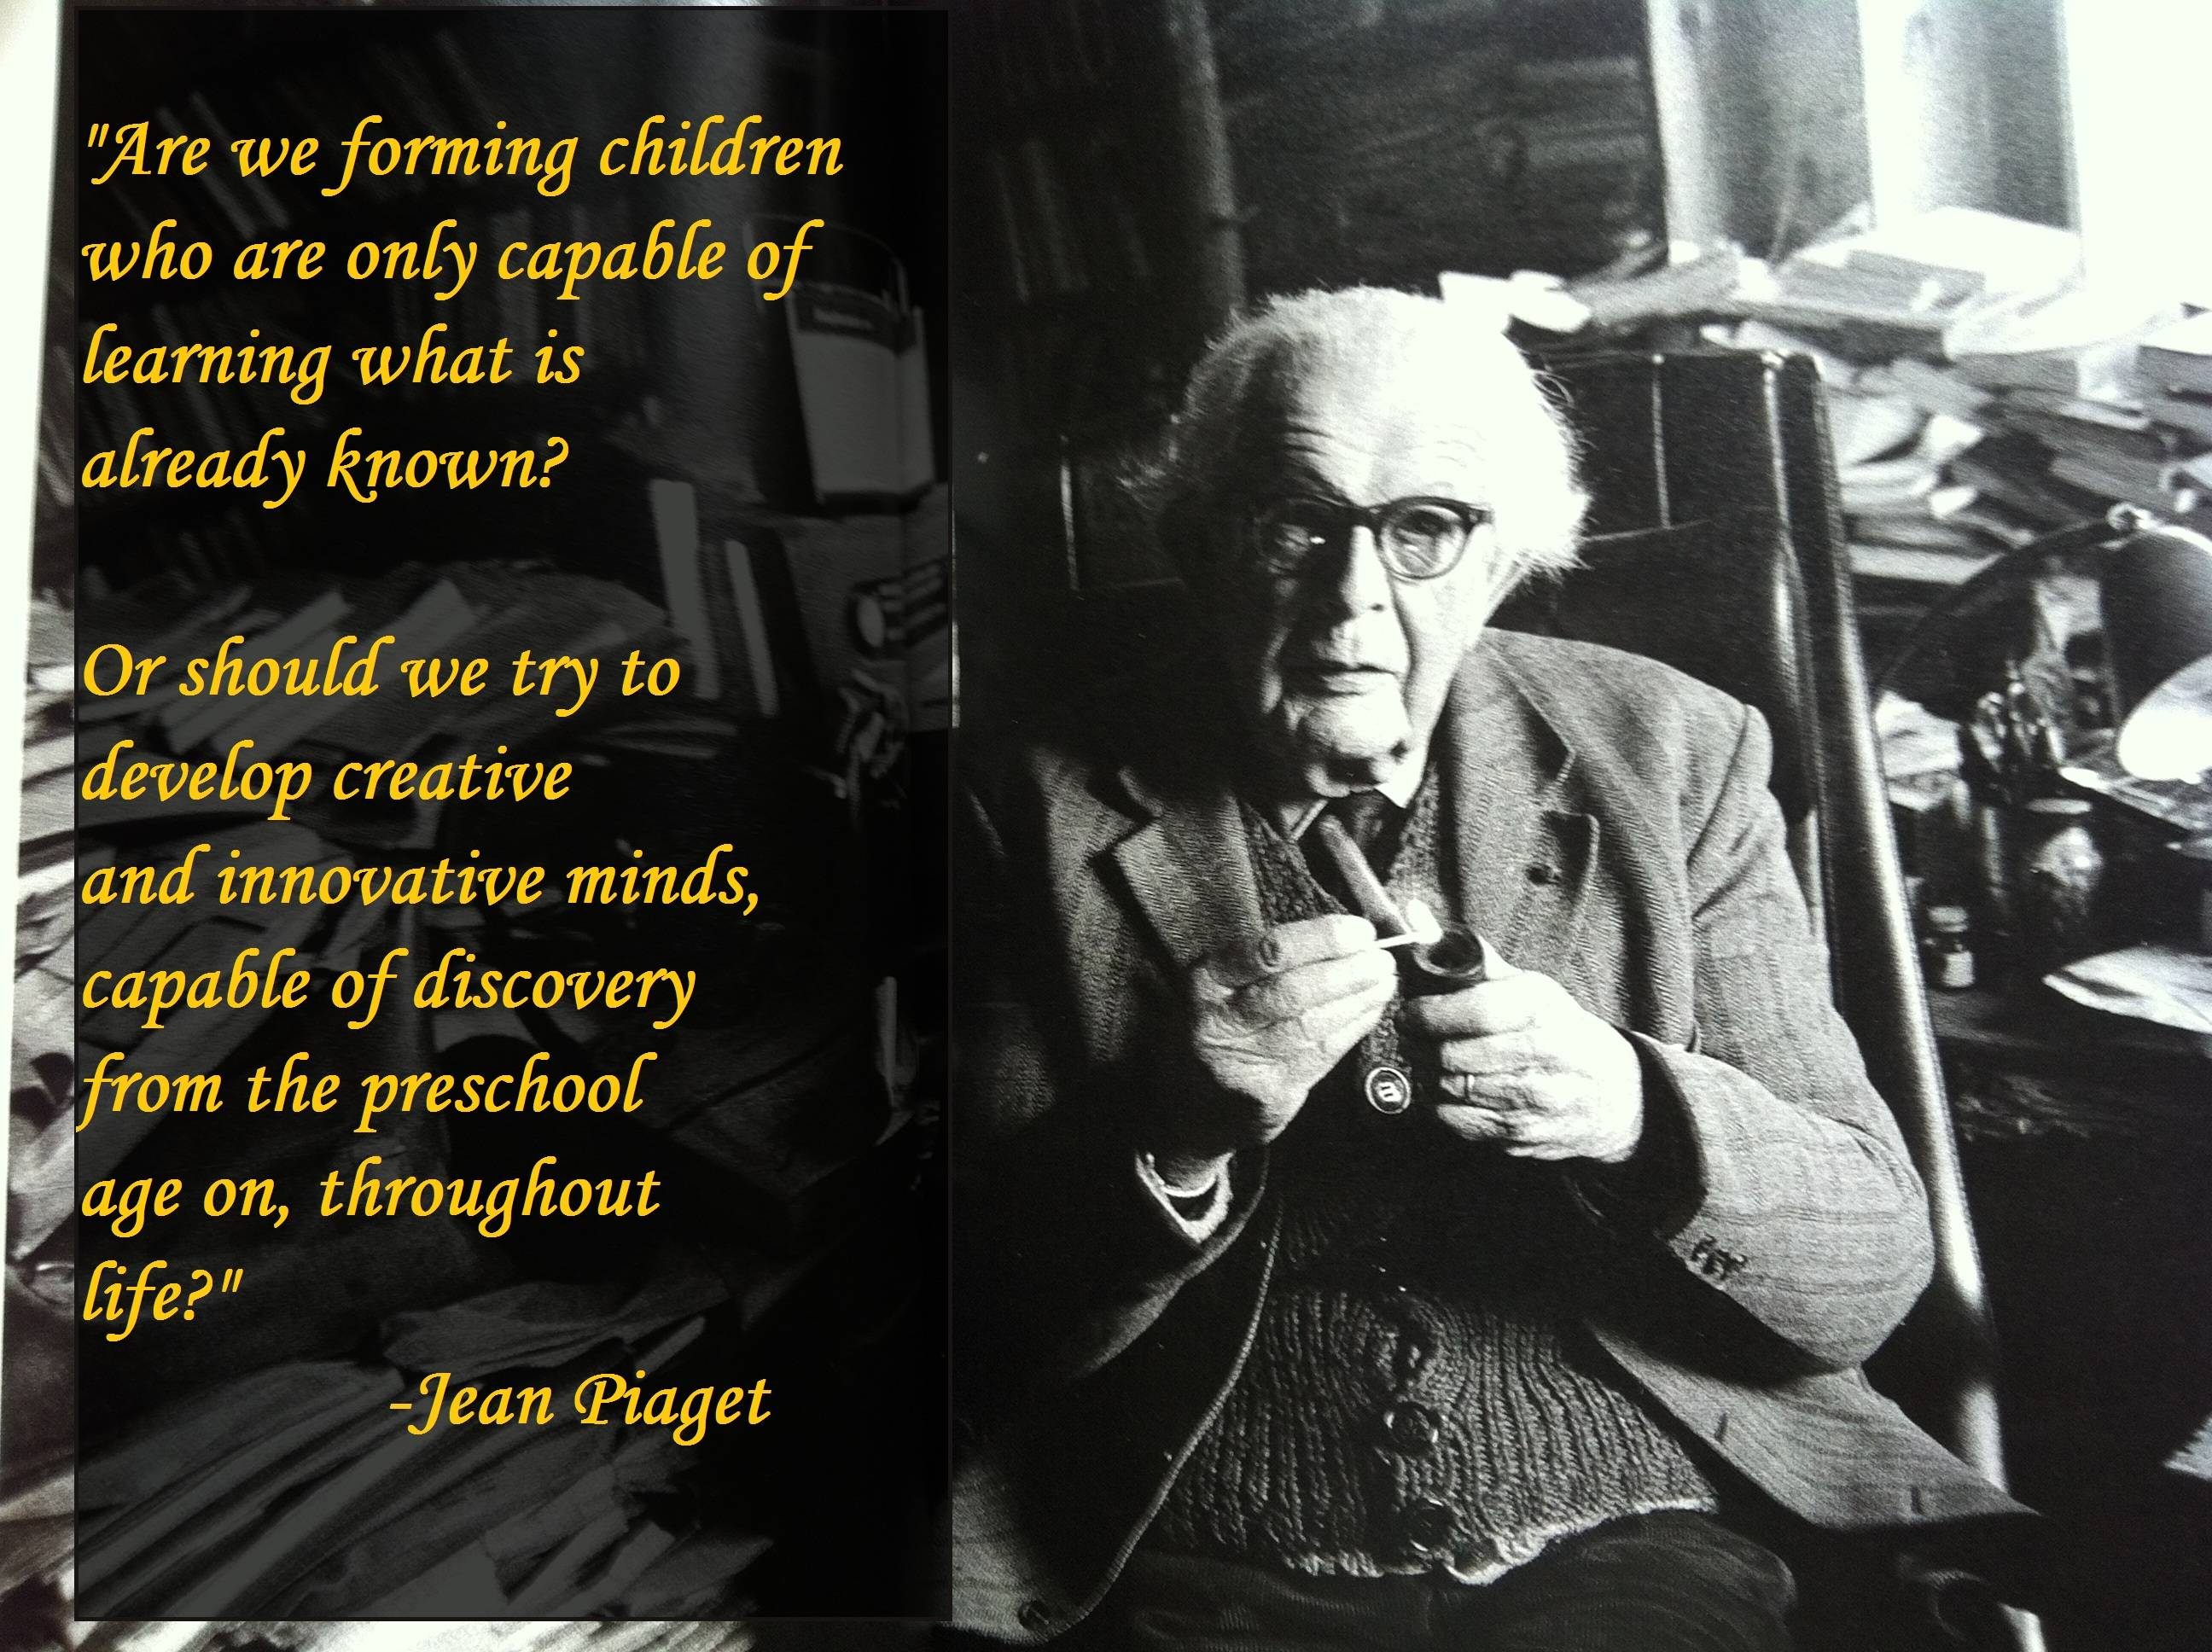 Jean Piaget's quote #3